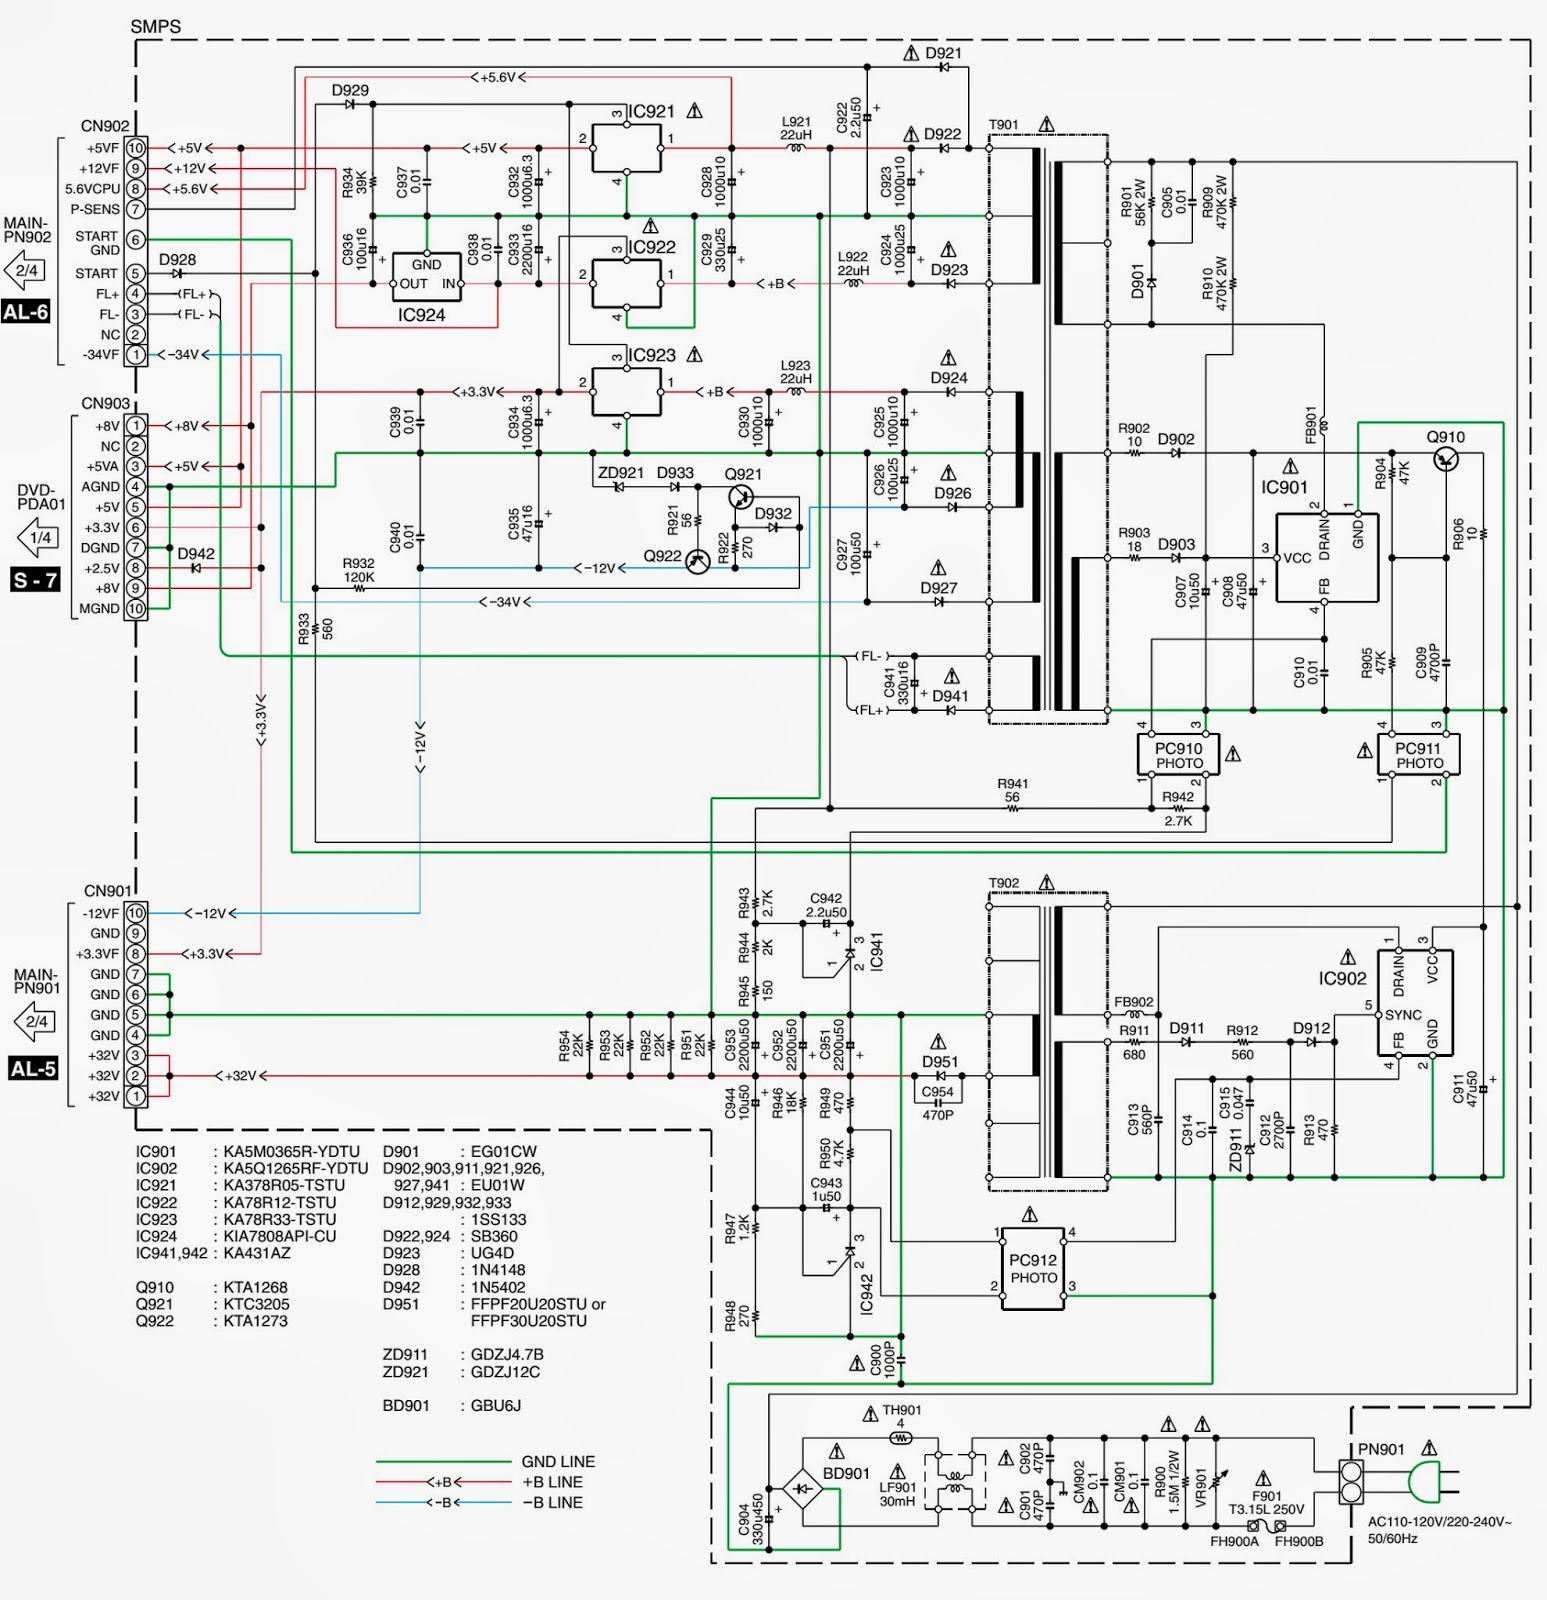 medium resolution of schematic info kenwood dvr 6300 smps power supply schematic circuit wiring